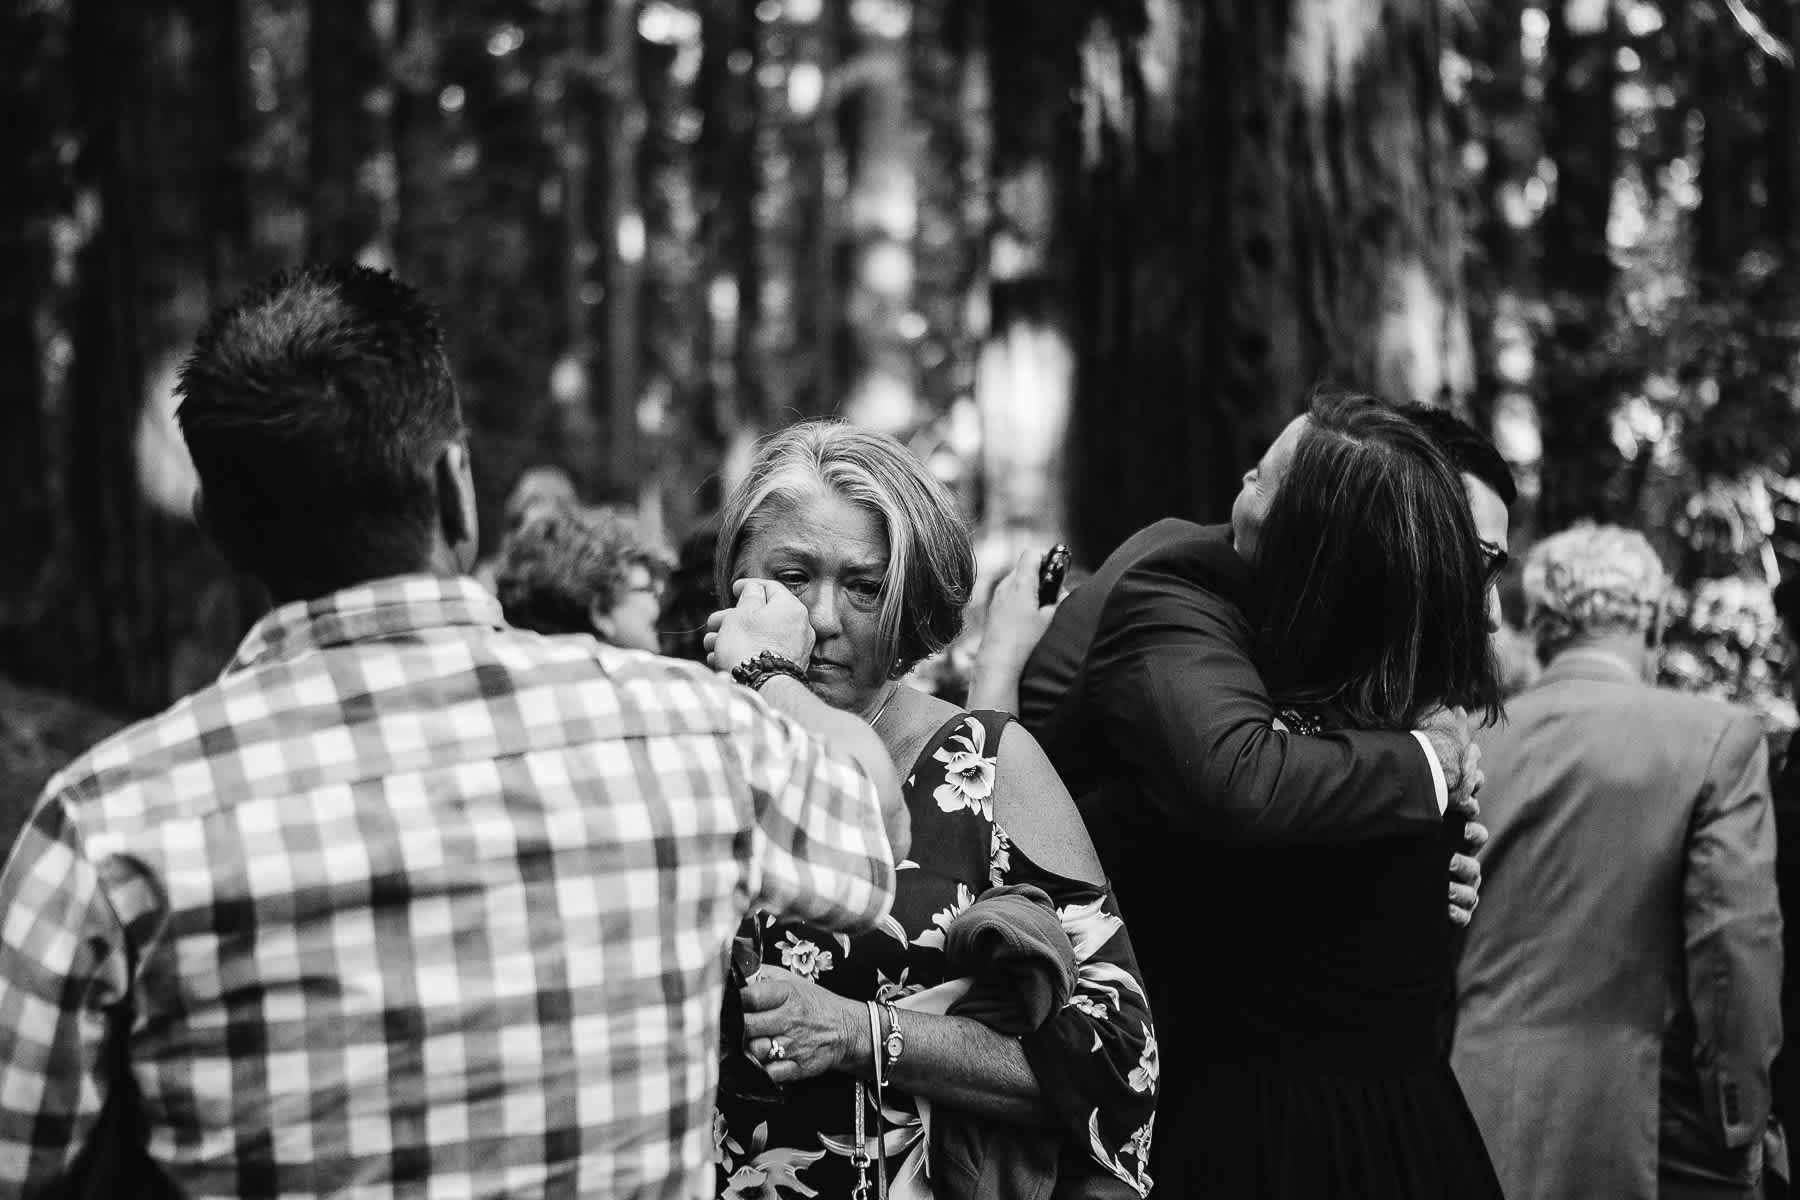 oakland-redwoods-summer-wedding-67